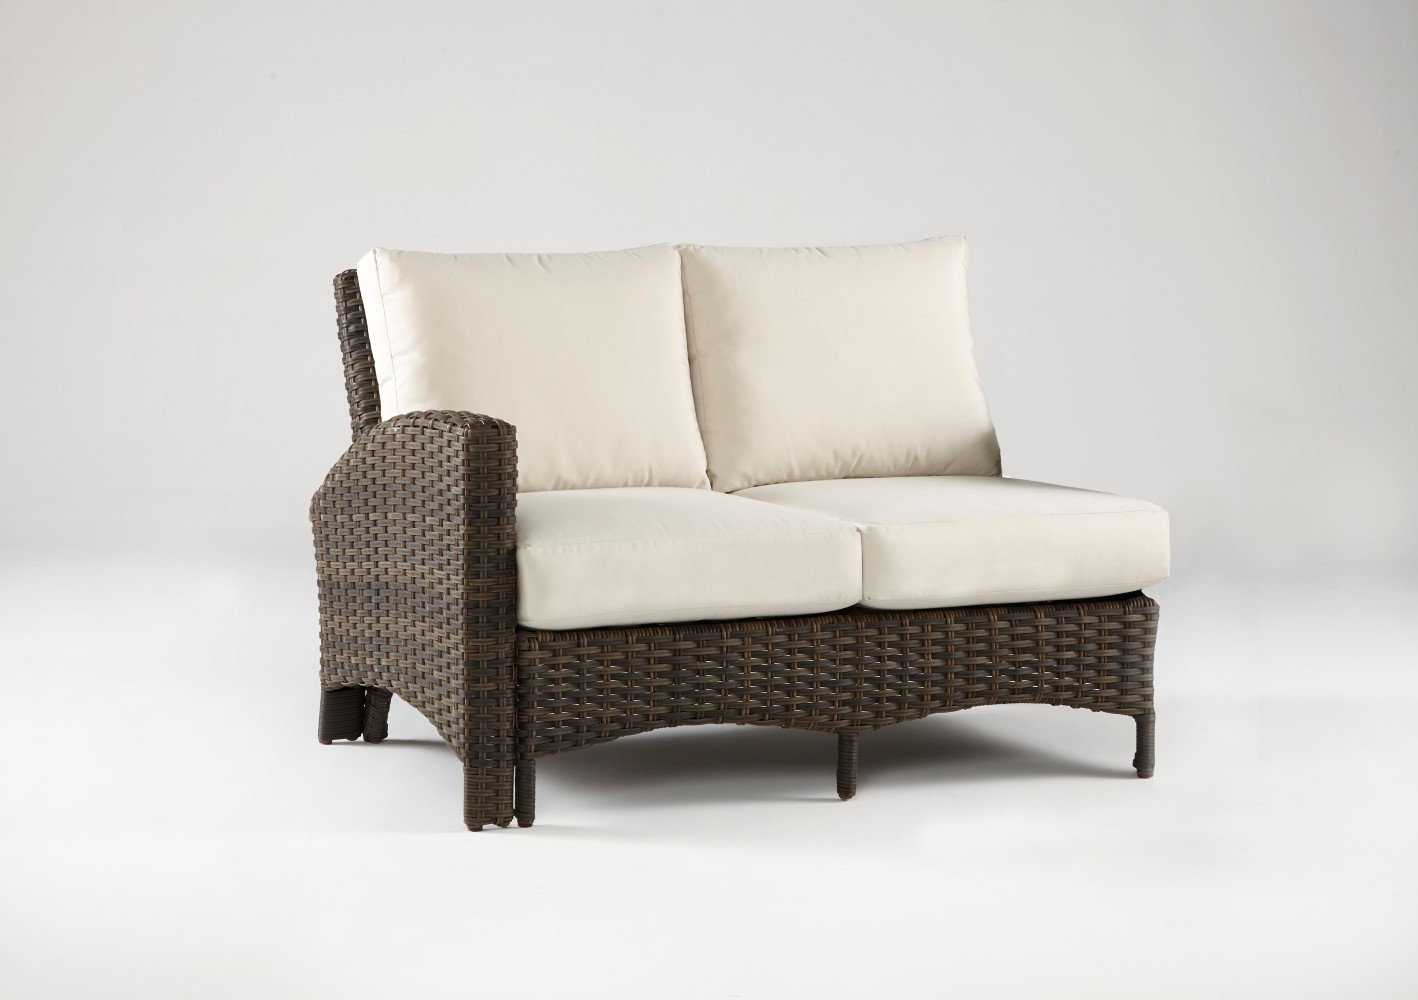 South Sea Rattan South Sea Rattan Panama One Arm Loveseat Left-Side Facing Sectional Sectional Piece - Rattan Imports